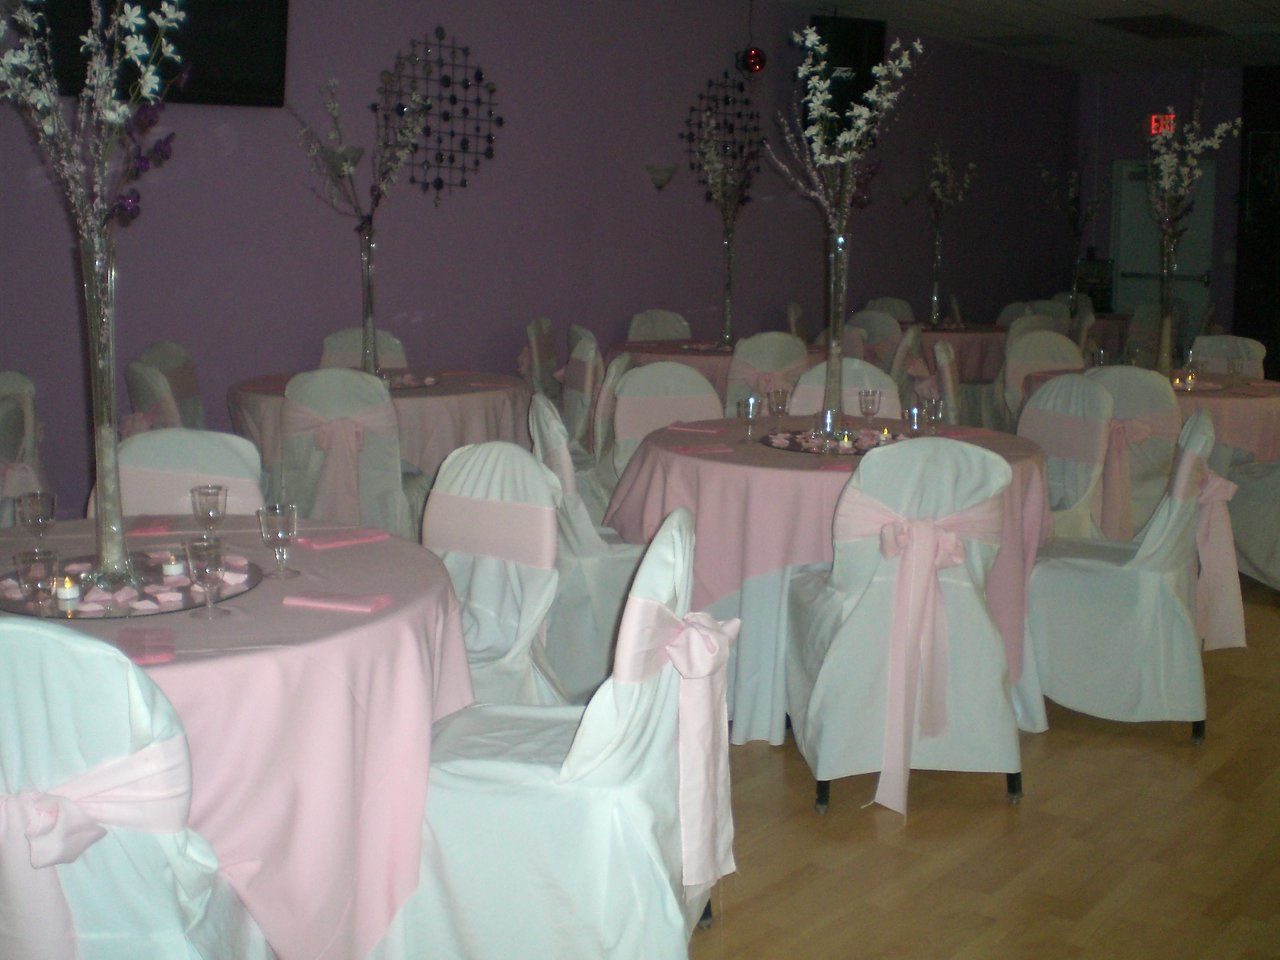 Baby Shower Venues Atlanta. Wix.com Salsamorbanquethall Created By Salsamor  Based On Catering .